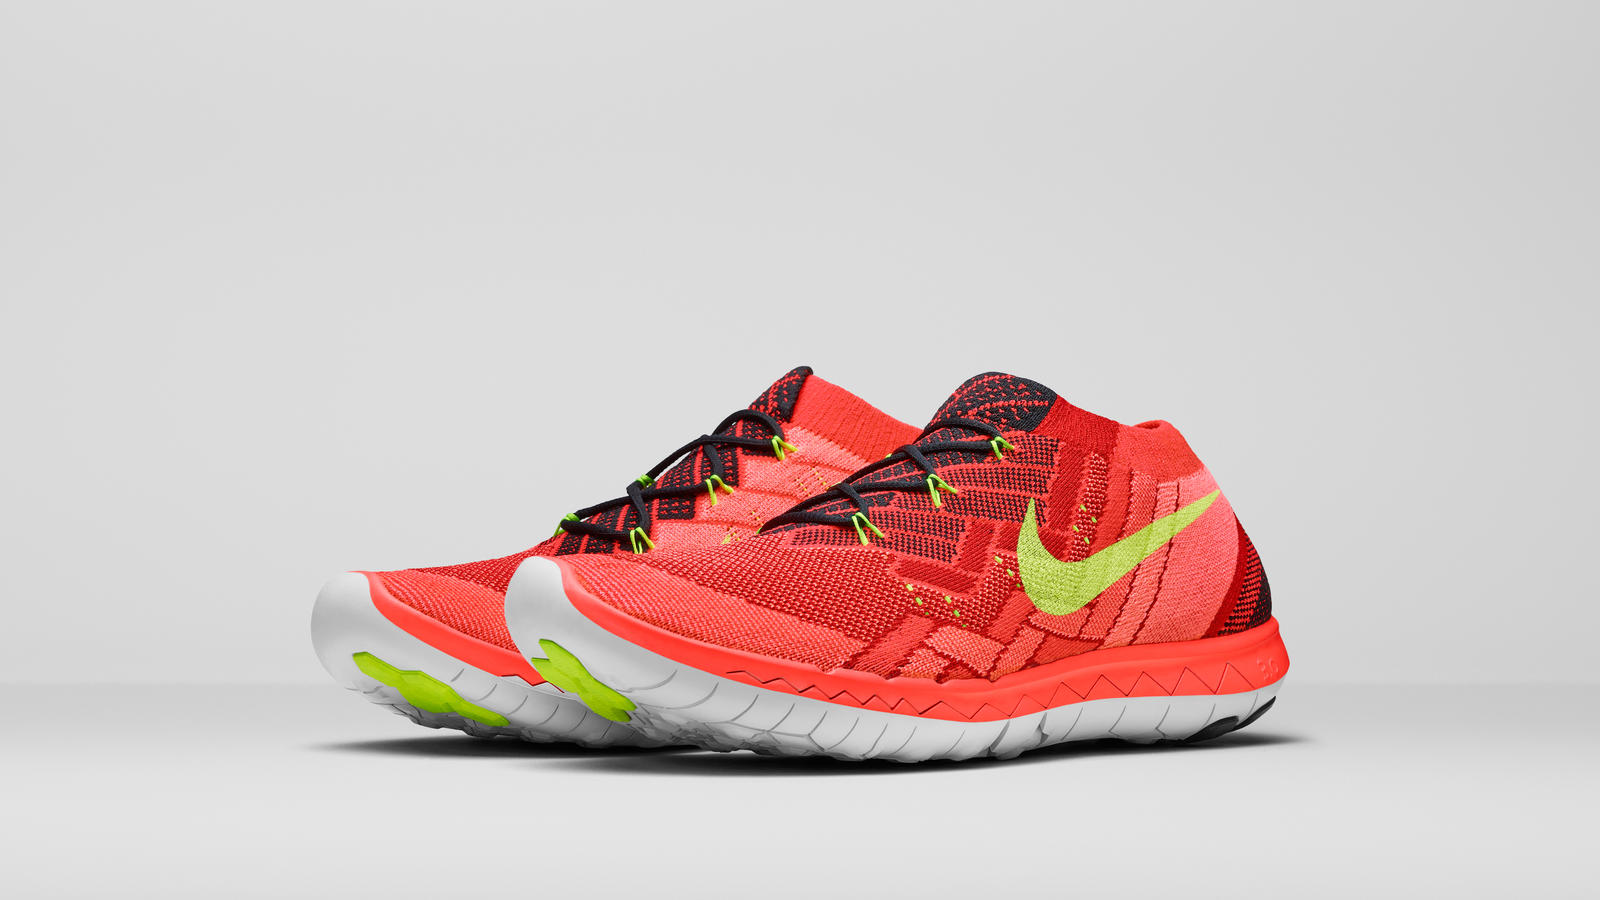 womens nike free 3.0 red gold